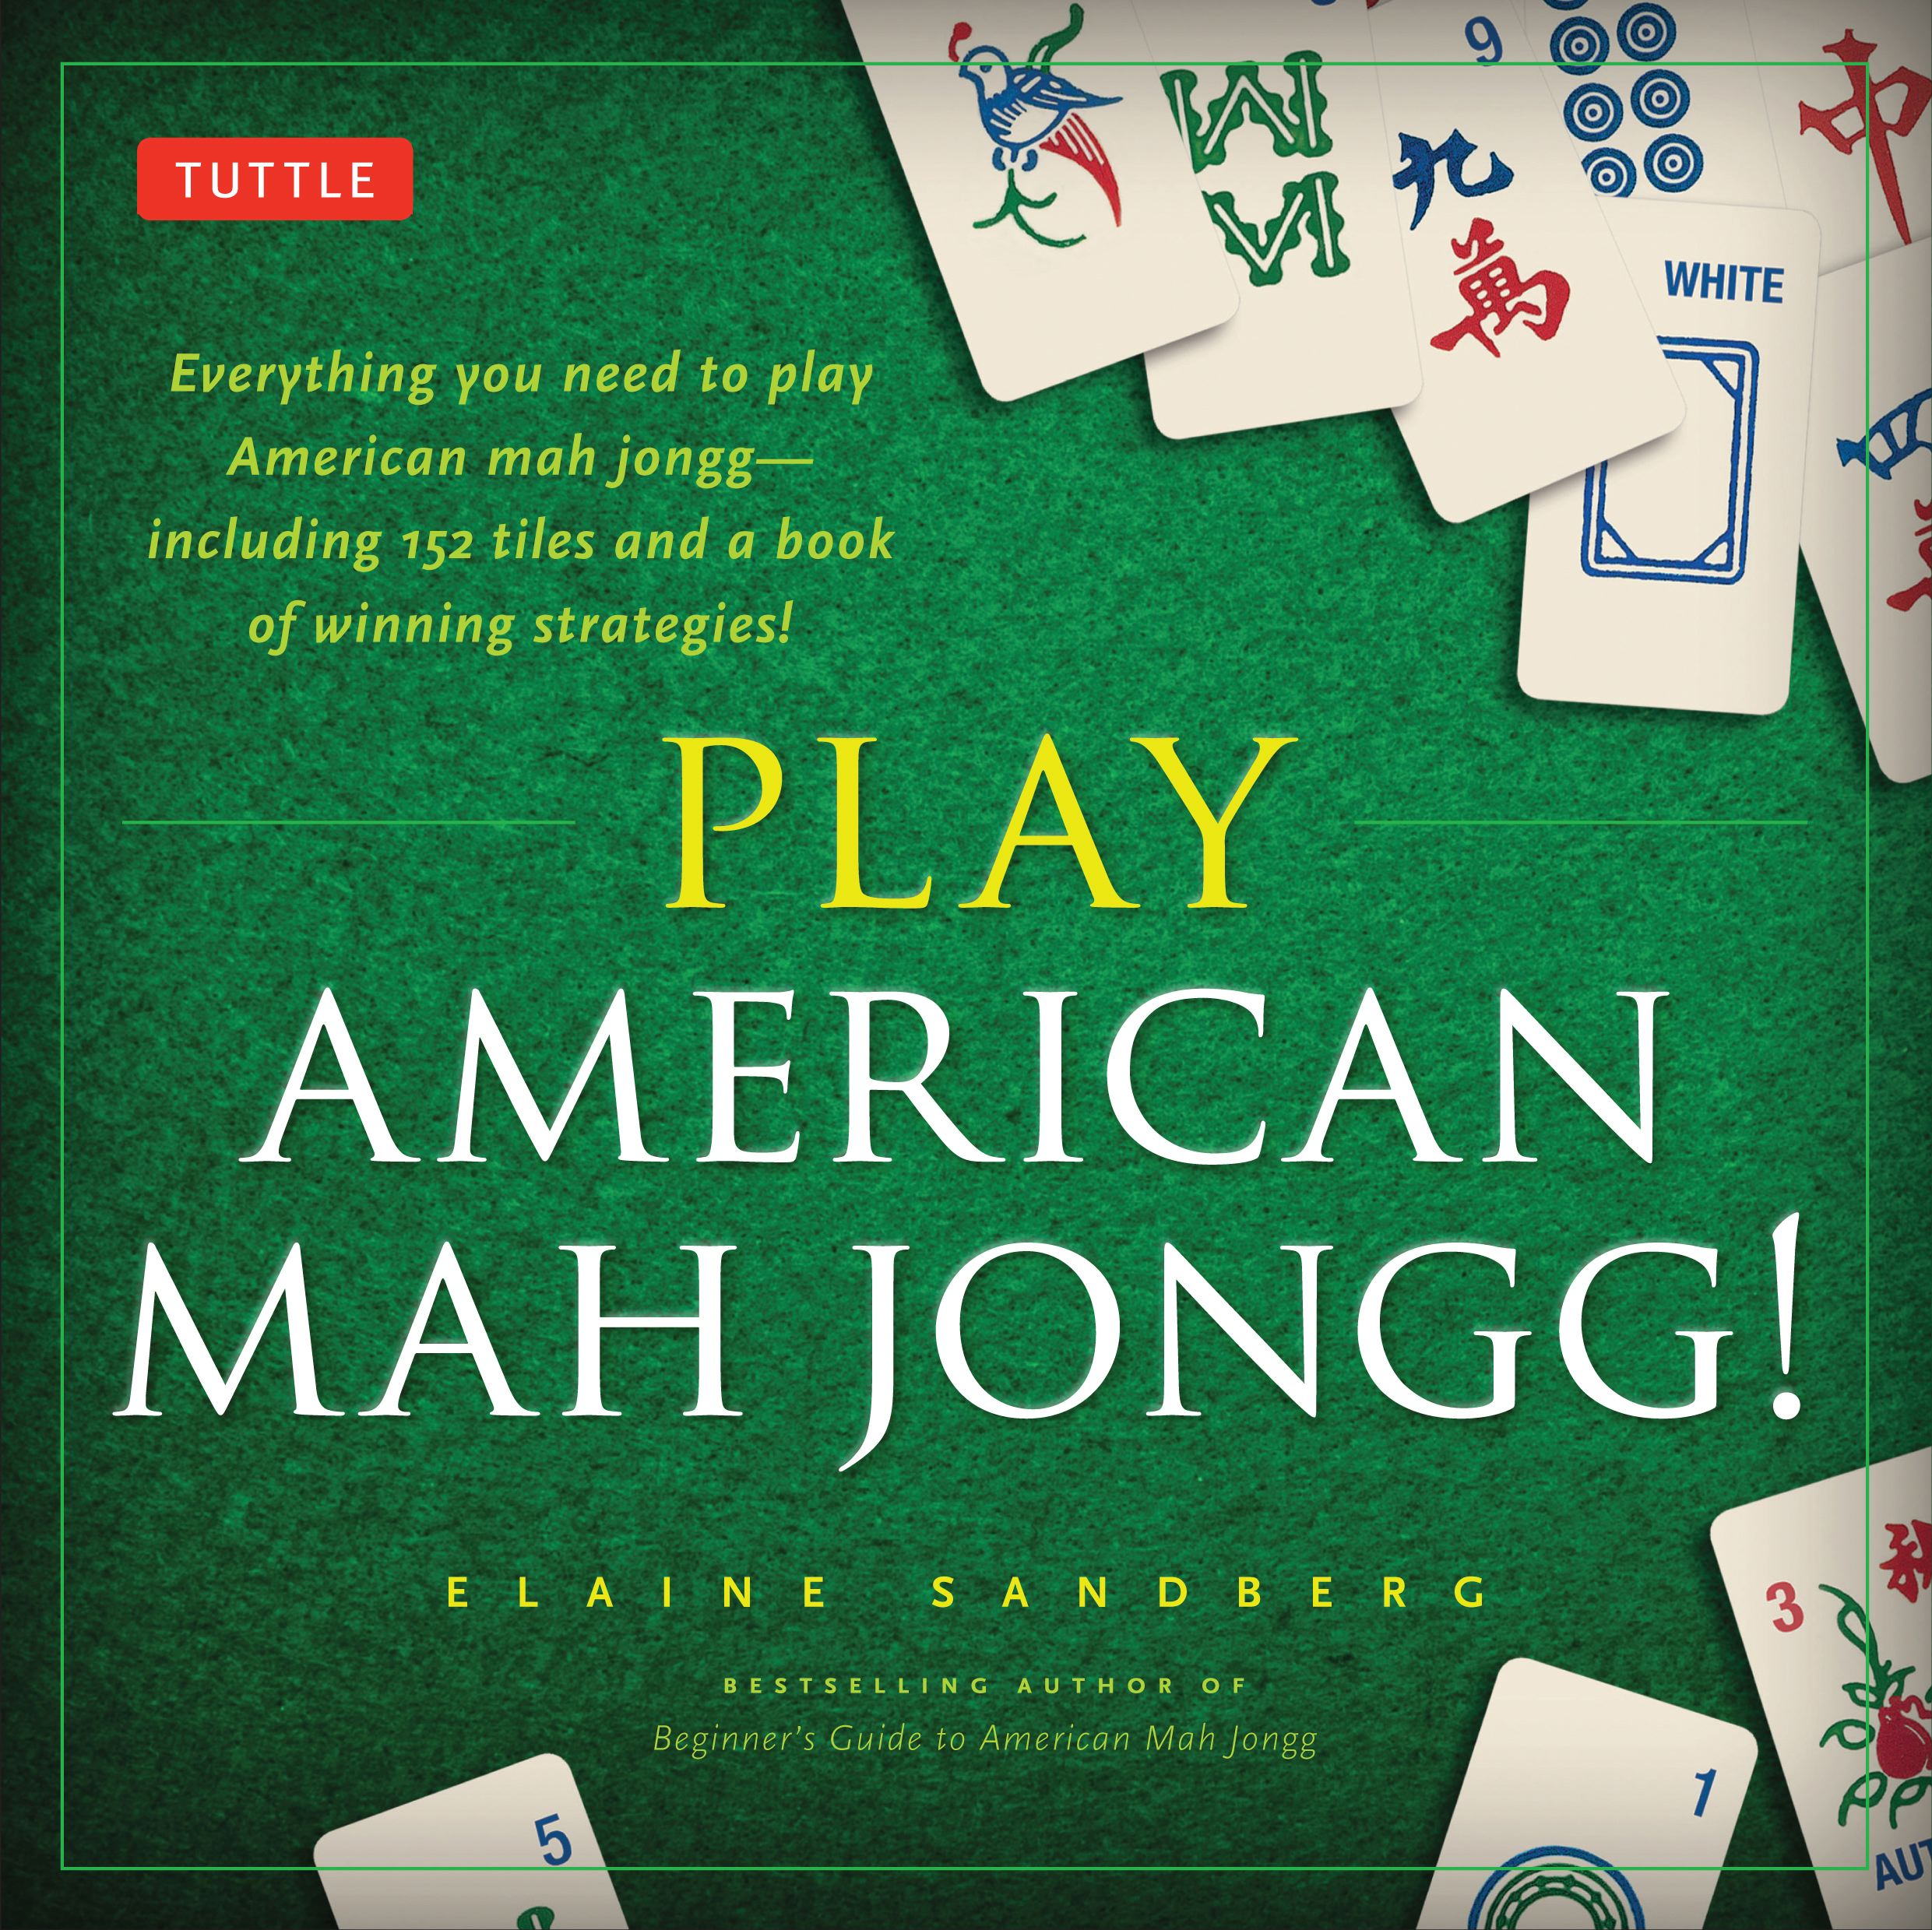 Play American Mah Jongg! Kit : Everything You Need to Play American Mah Jongg (Includes Instruction Book and 152 Playing Cards)